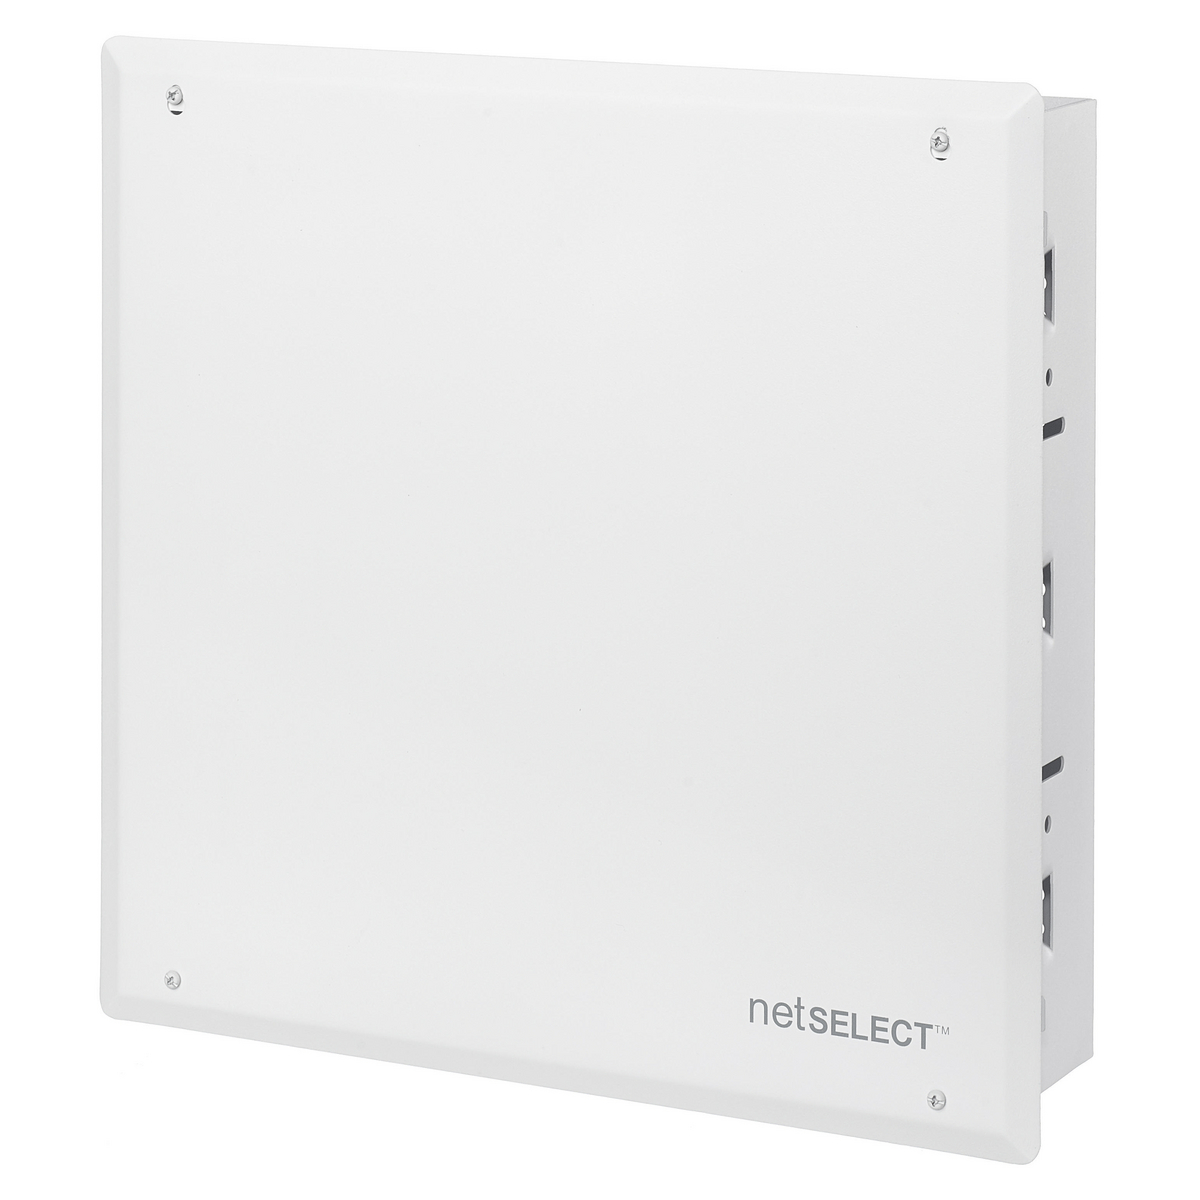 """Hubbell NSOBOX14BCCABINET, NETSELECT, 14""""H, w/PANEL COVER, WH"""